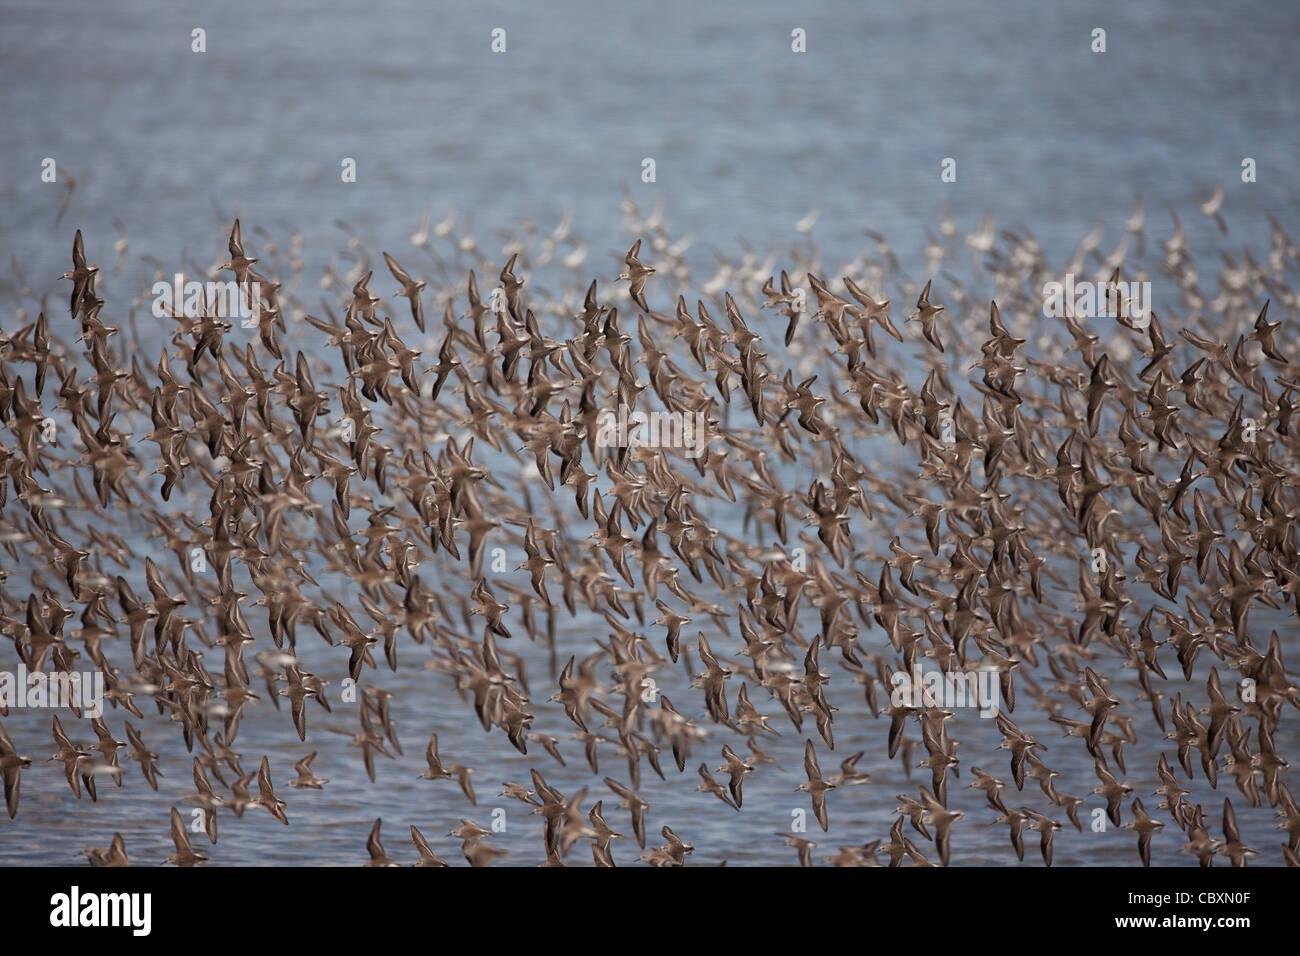 A flock of shorebirds in flight at Punta Chame, Pacific coast, Panama province, Republic of Panama. Stock Photo